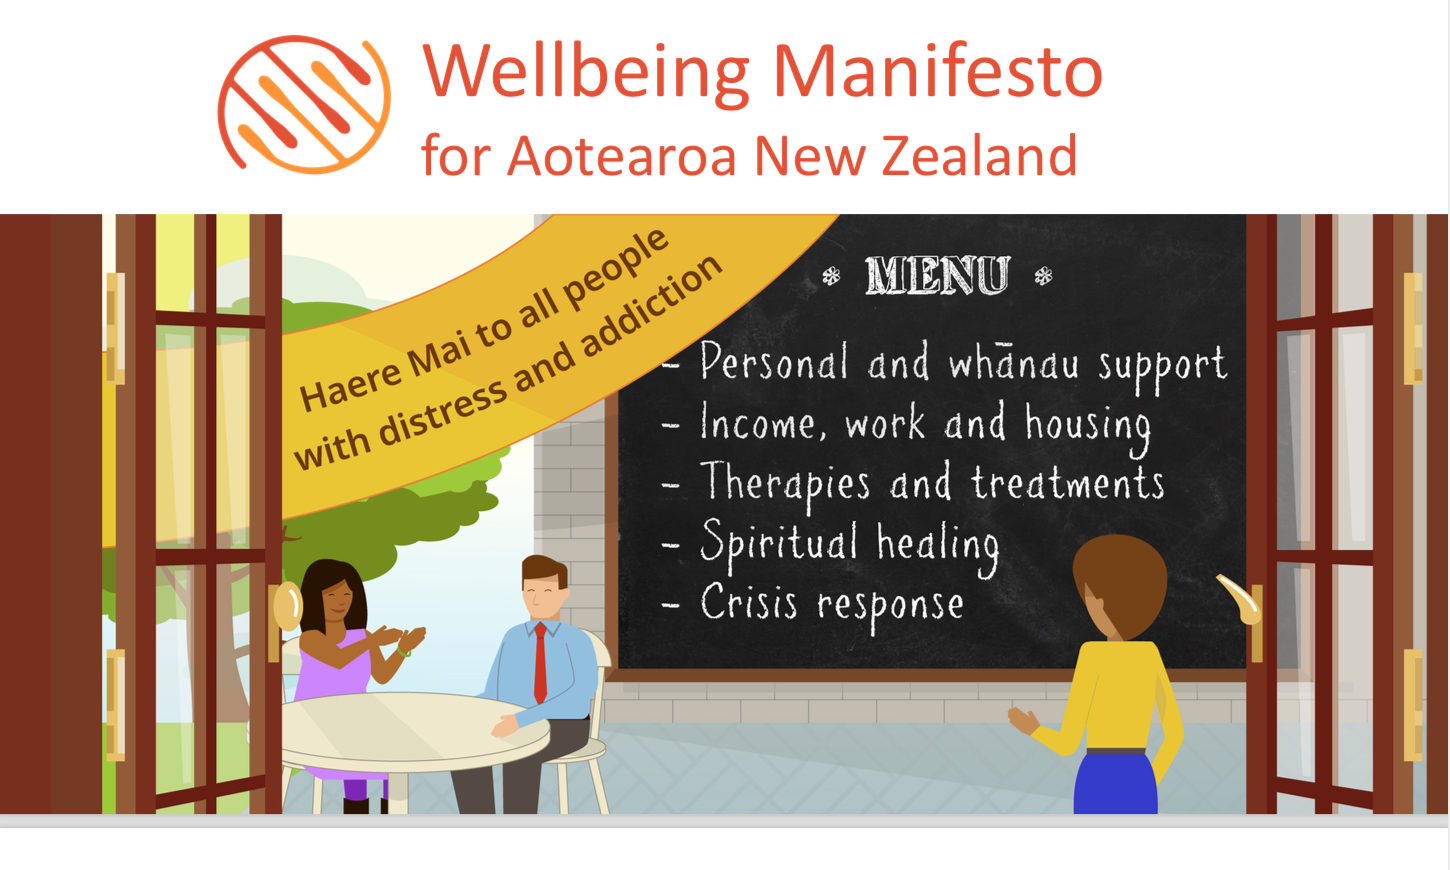 Mary O'Hagan Wellbeing Manifesto